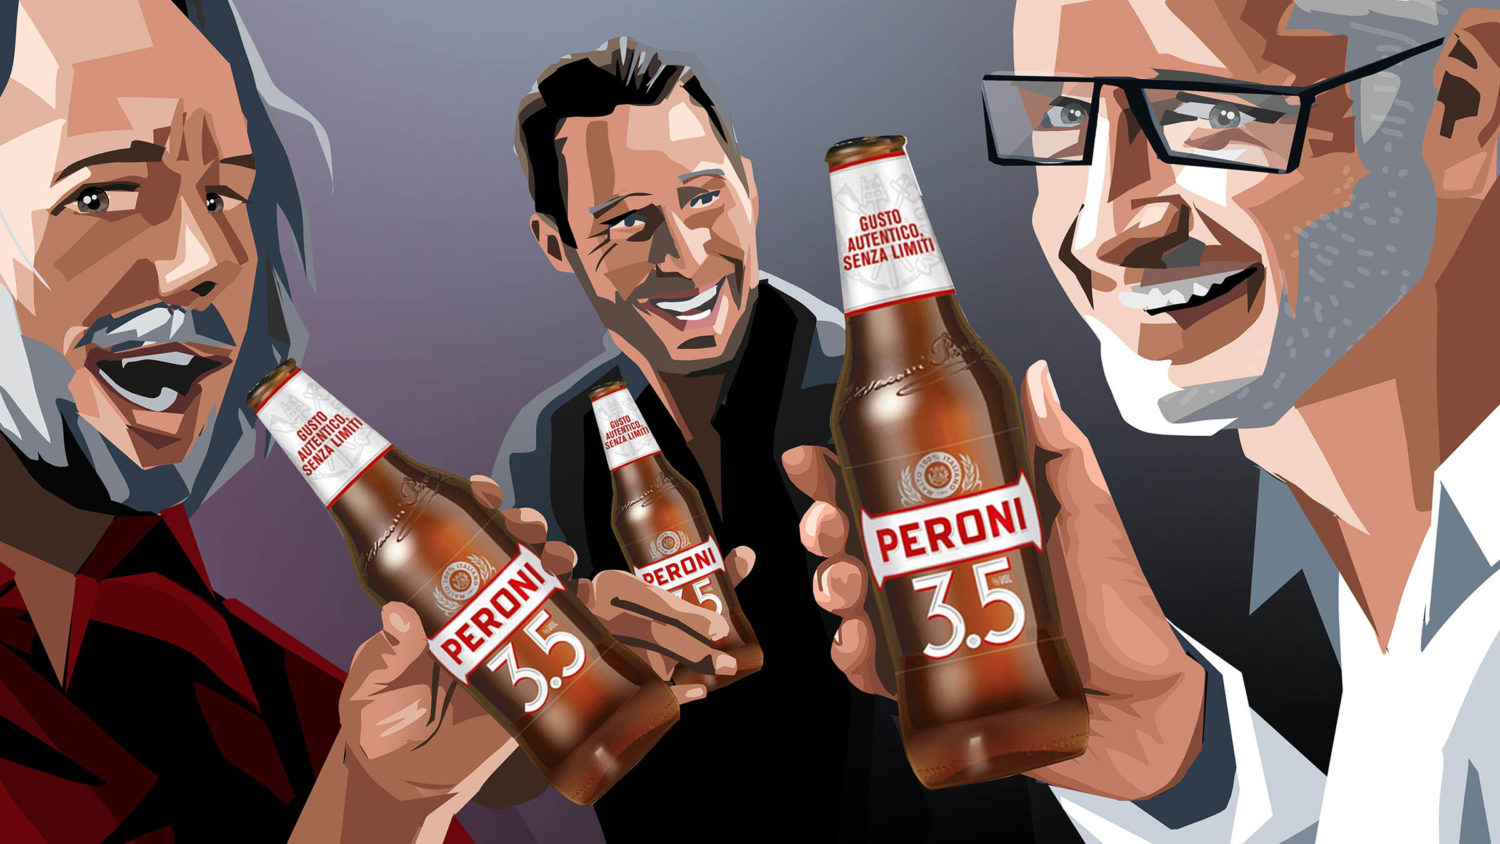 Eat Sleep And Design Peroni Band Storyboard